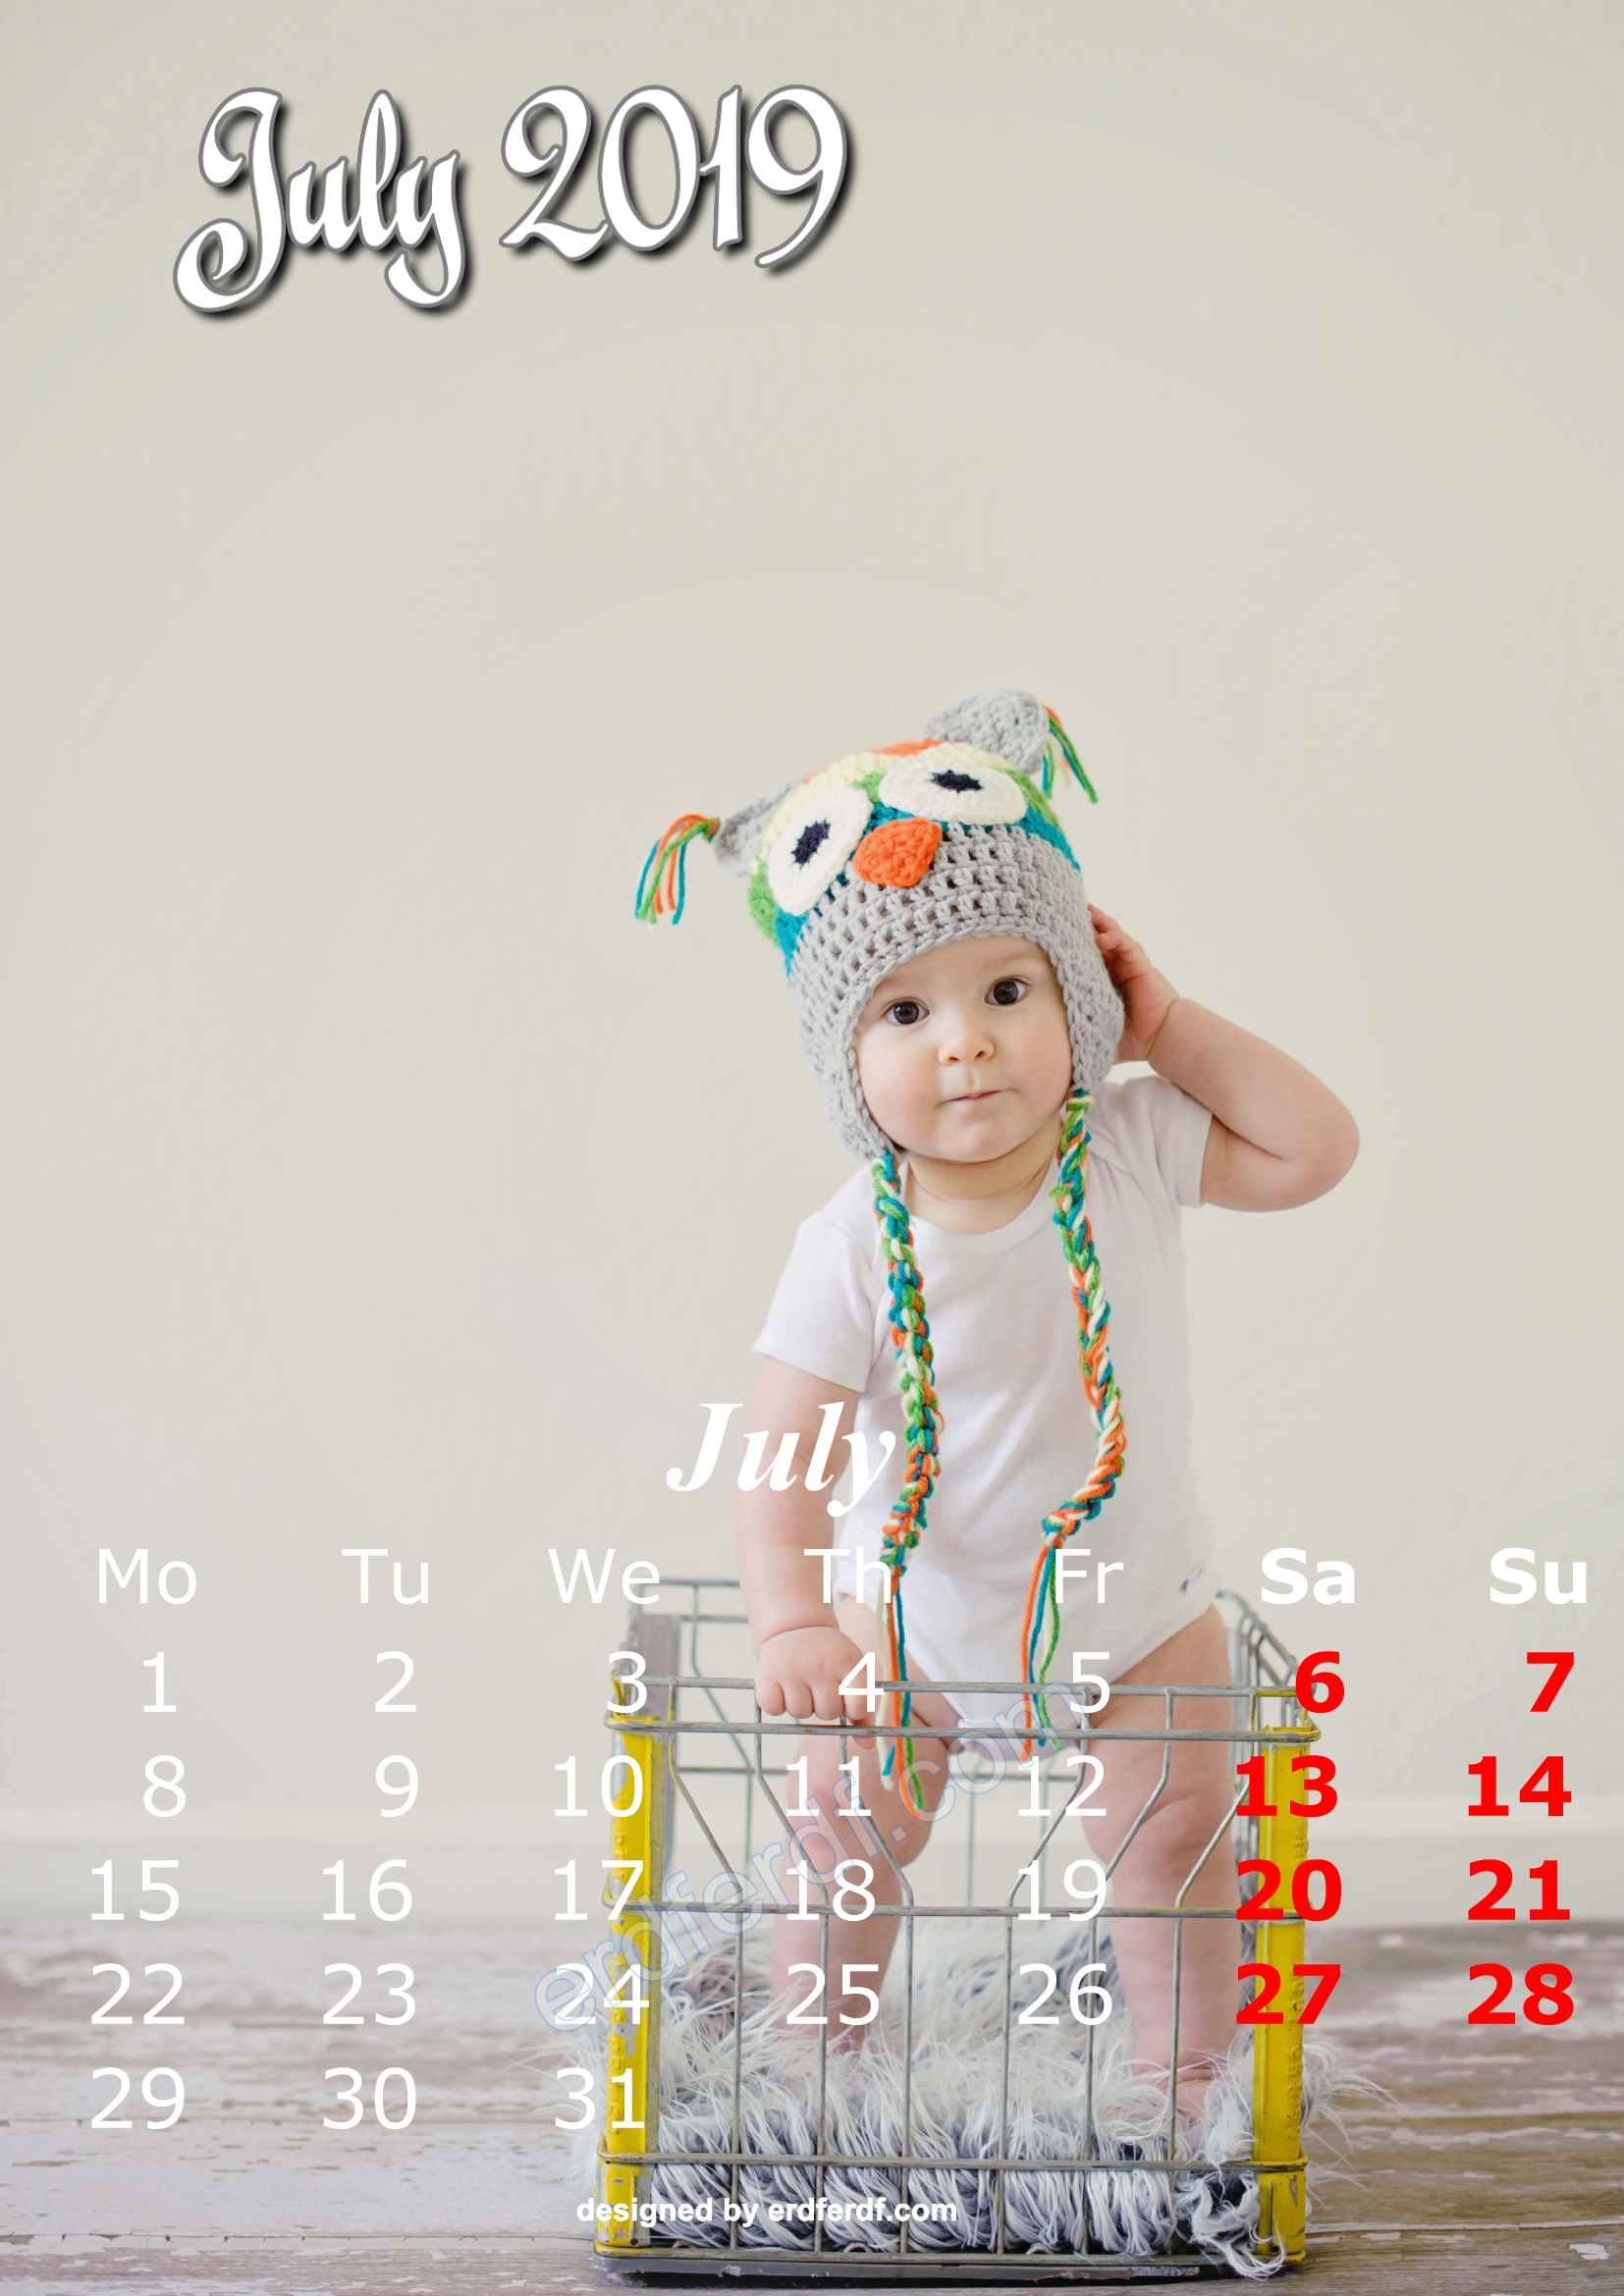 7 July Cute Kids Calendar 2019 Printable Free Design